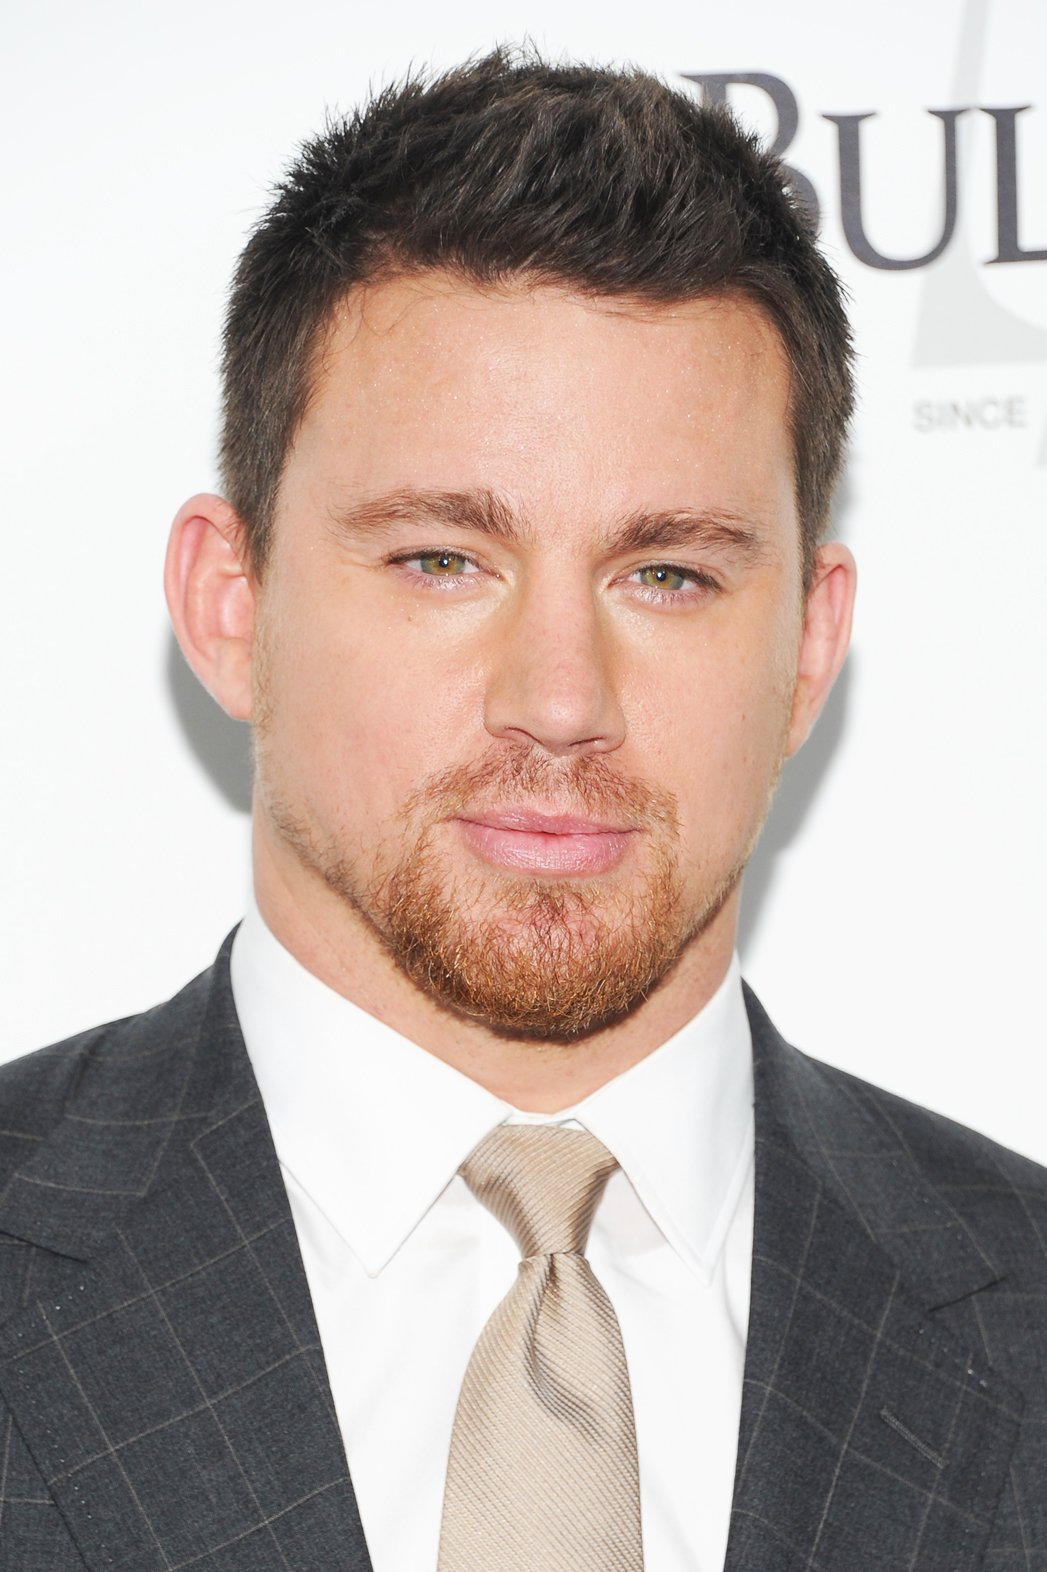 Channing Tatum with a Beard